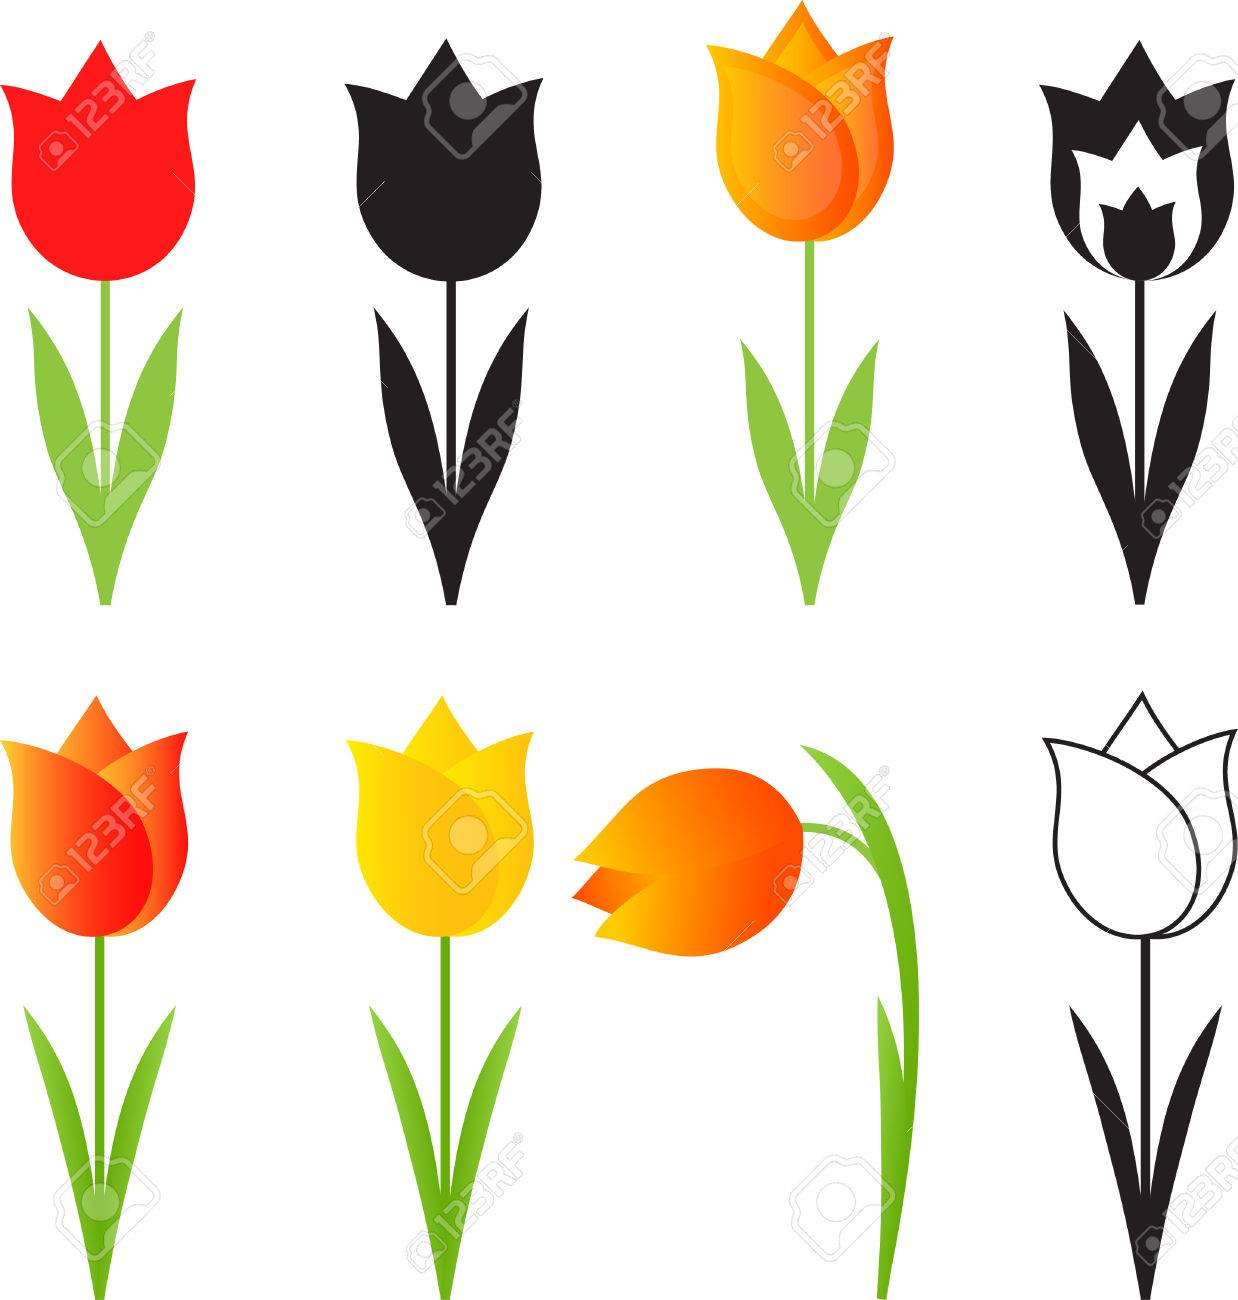 Isolated spring flowers vectors tulip vectors royalty free cliparts isolated spring flowers vectors tulip vectors stock vector 37426753 mightylinksfo